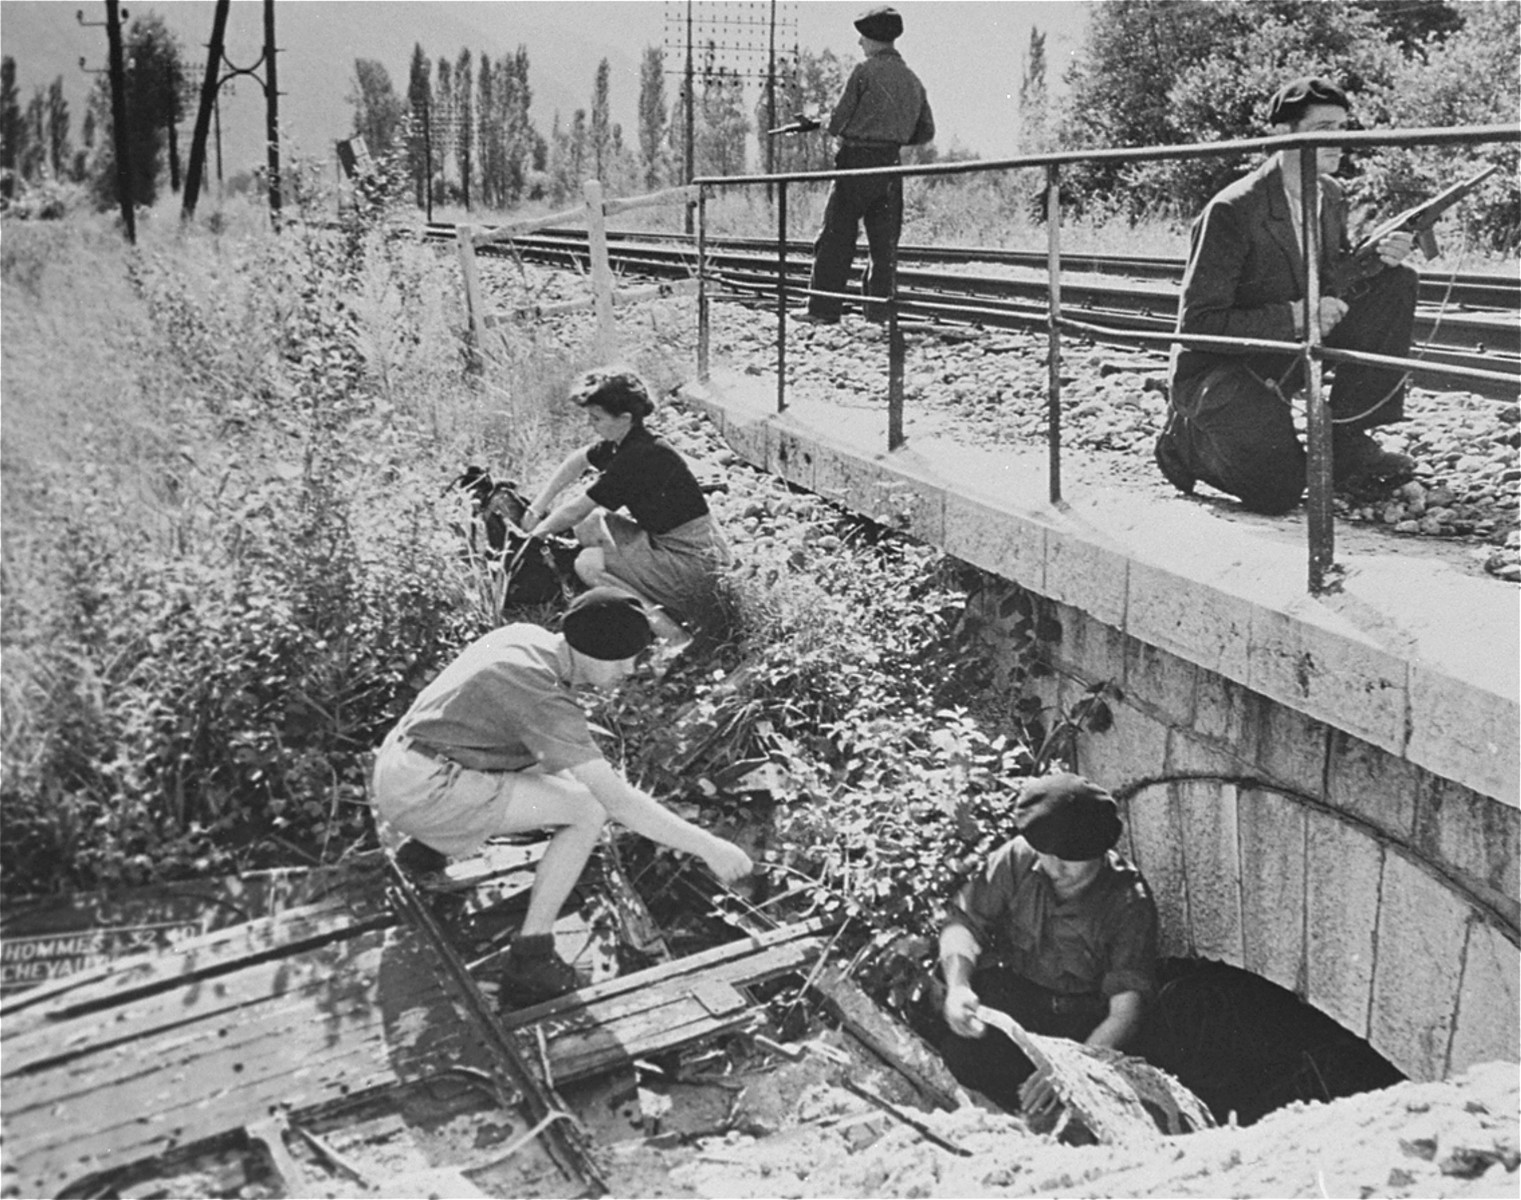 Members of the Maquis of Voireppe in the Chartreuse Region of the French Alps demonstrate the method used to place dynamite demolition charges under a railroad trestle to delay Nazi supplies.